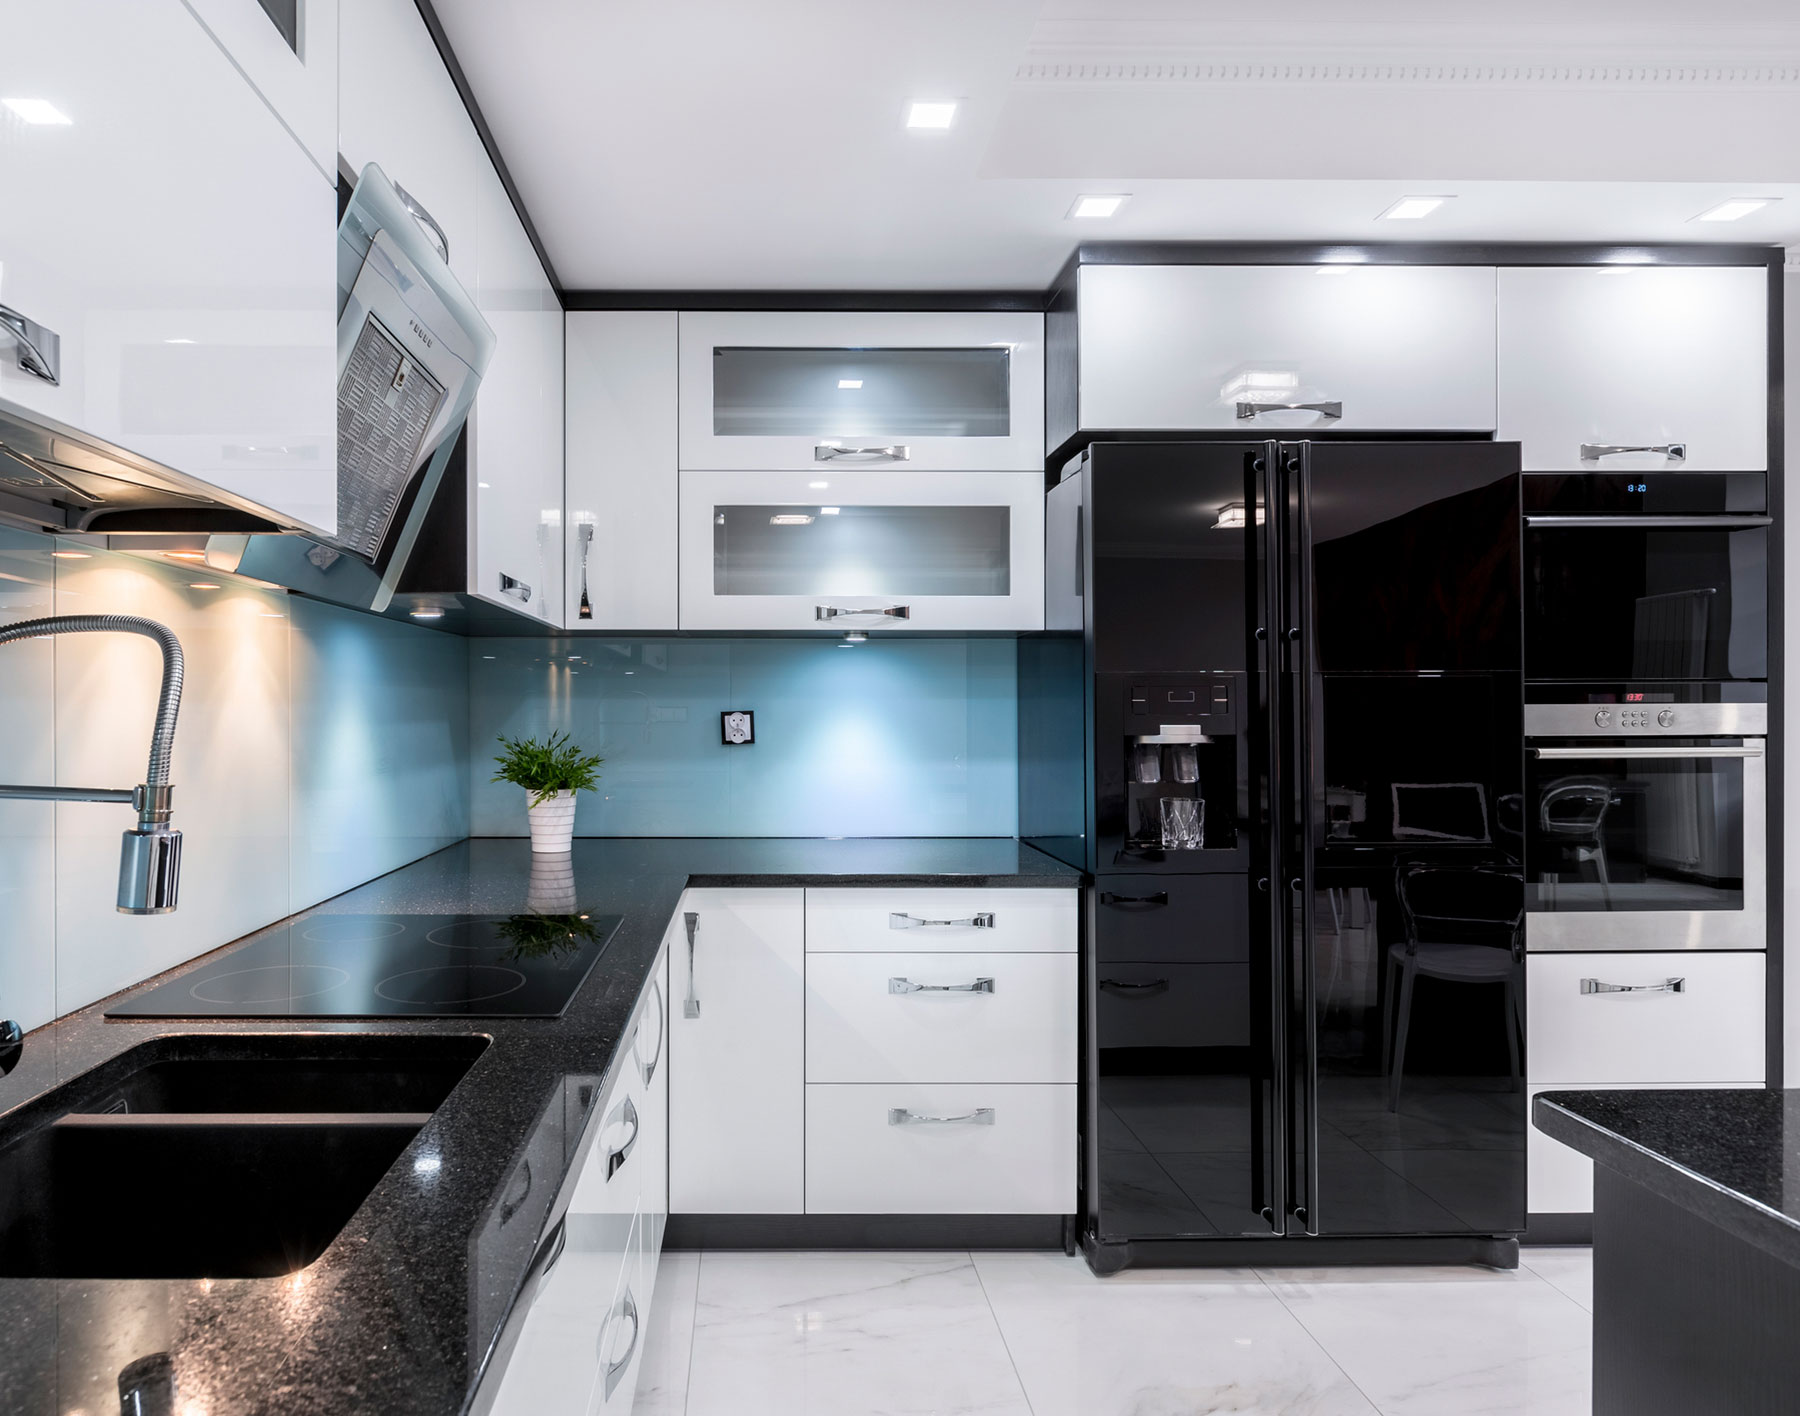 Simple Kitchen Appliances: Black Stainless Steel Appliances Are The Hot Kitchen Trend